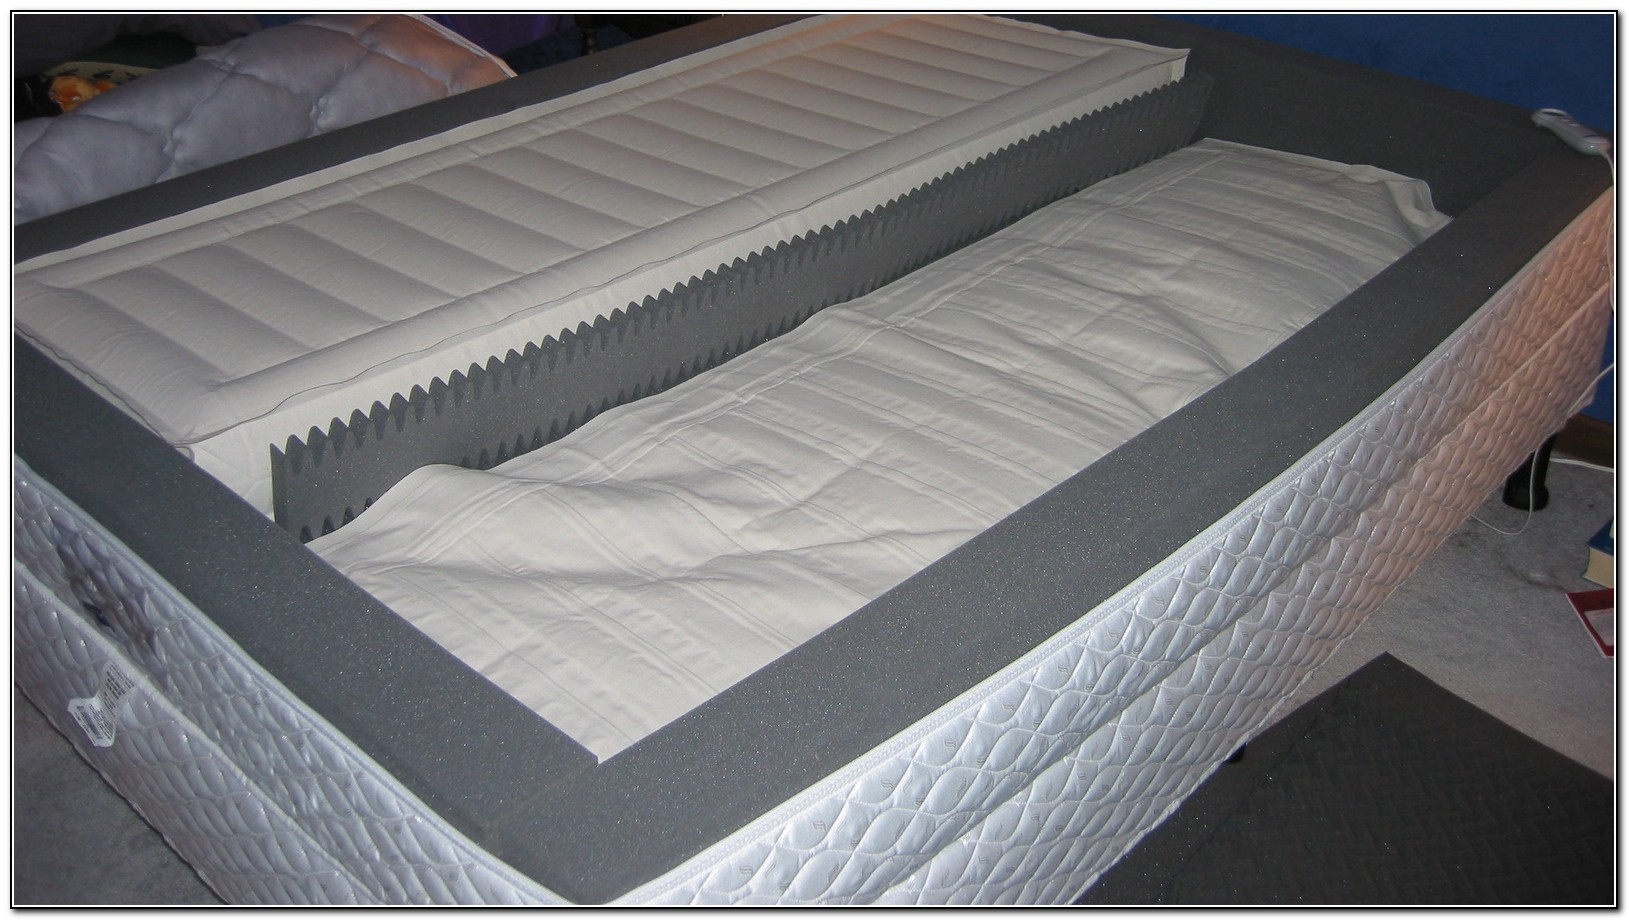 Sleep Number Bed Parts